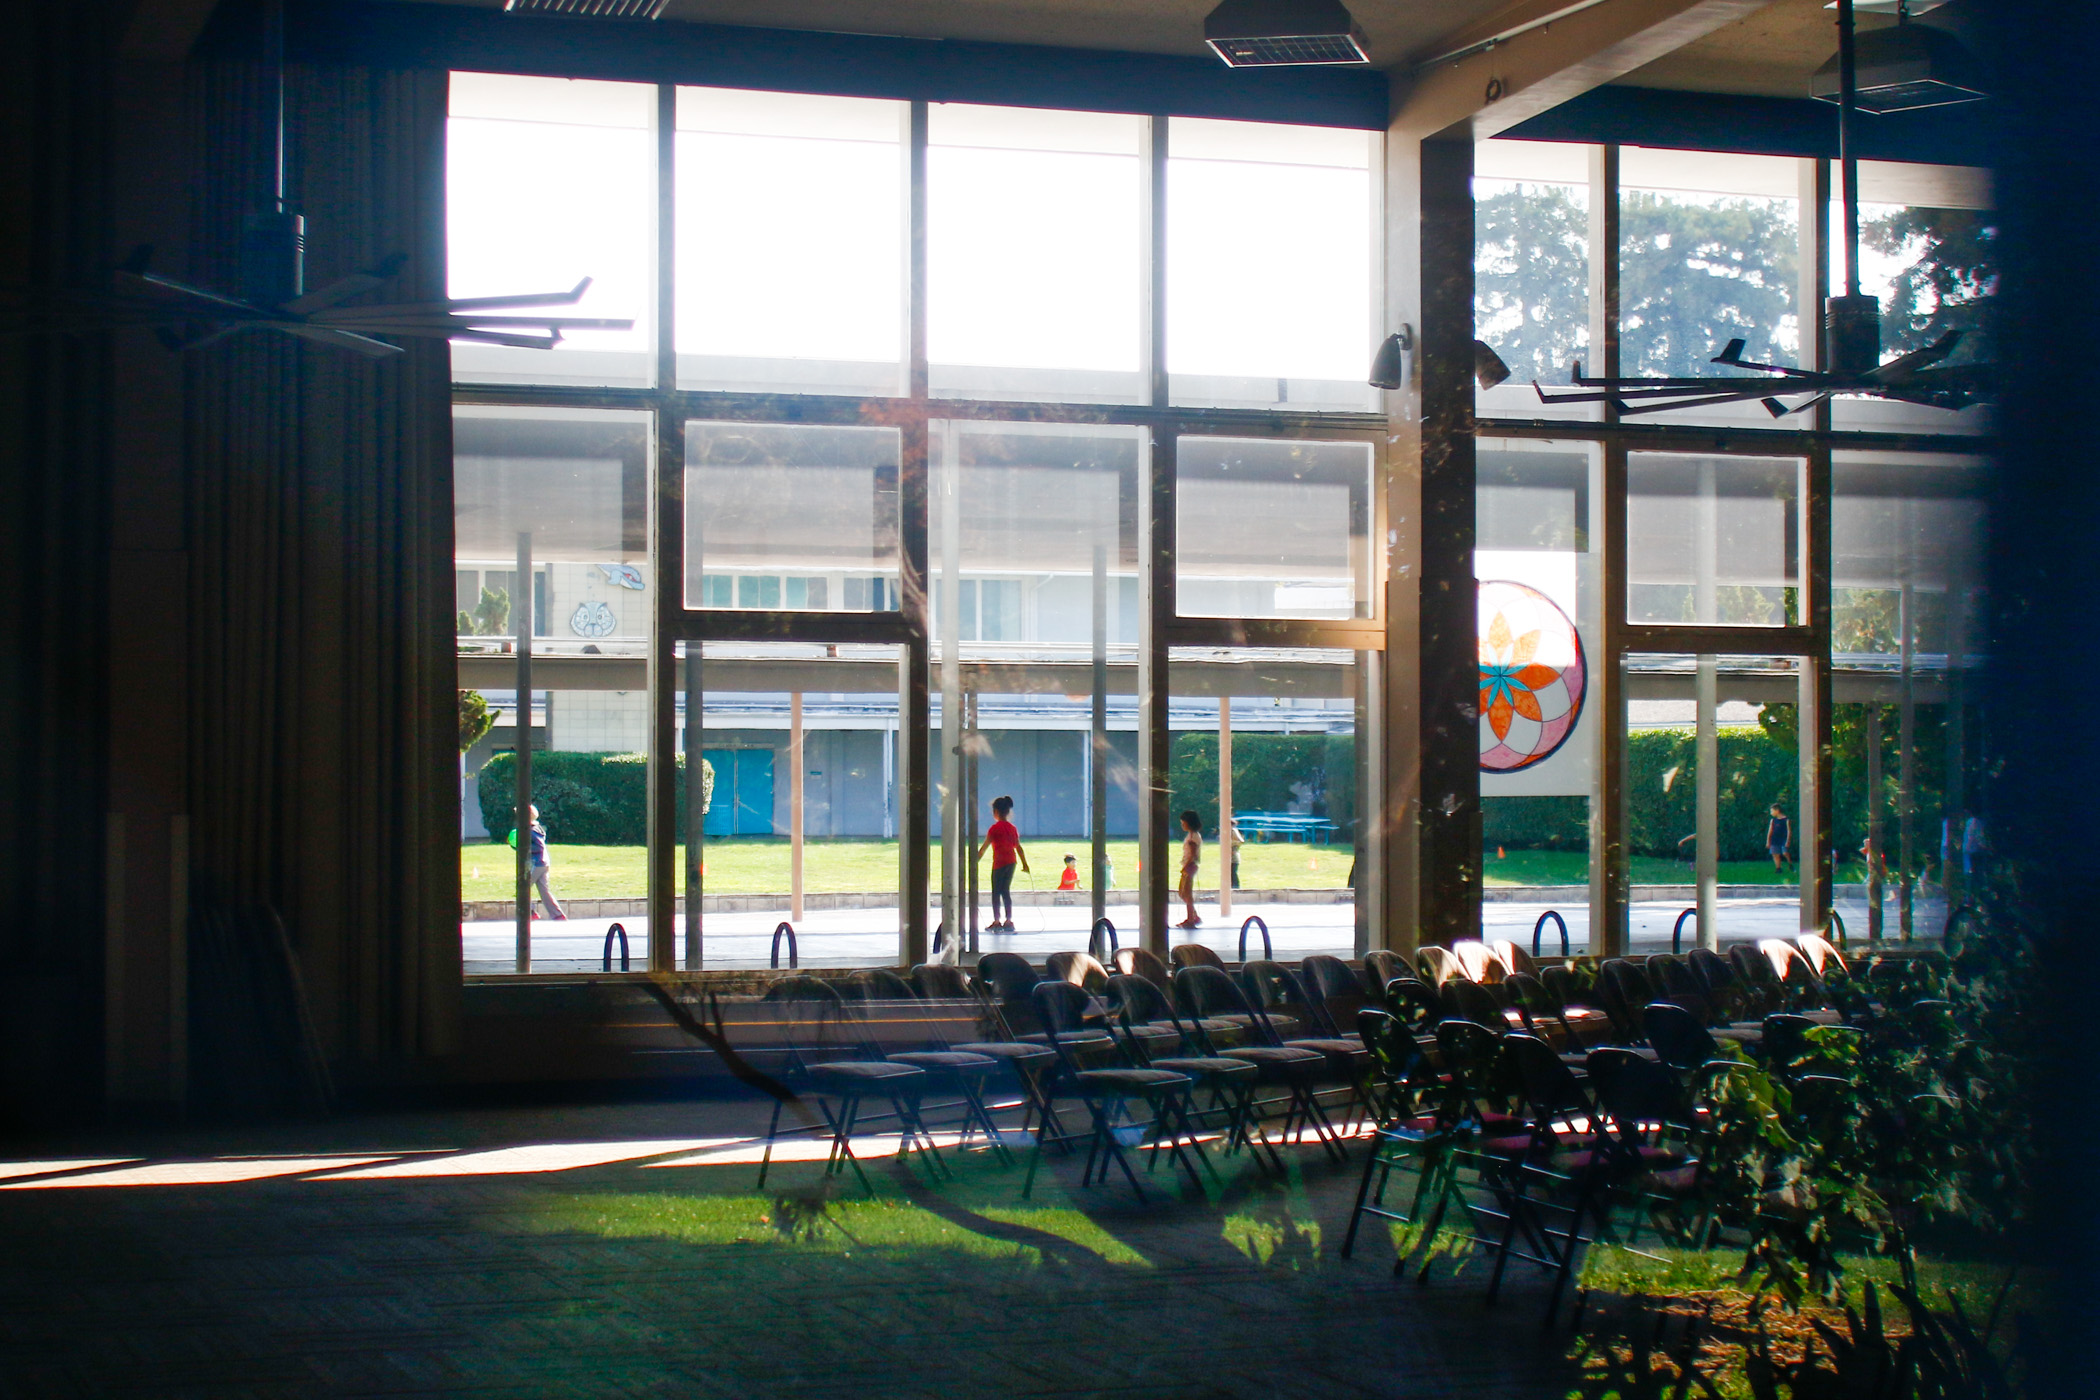 Children are seen playing outside through the windows of theauditorium where Sunday services are held for the Palo Alto Vineyard Church, one of three churches at the community center.